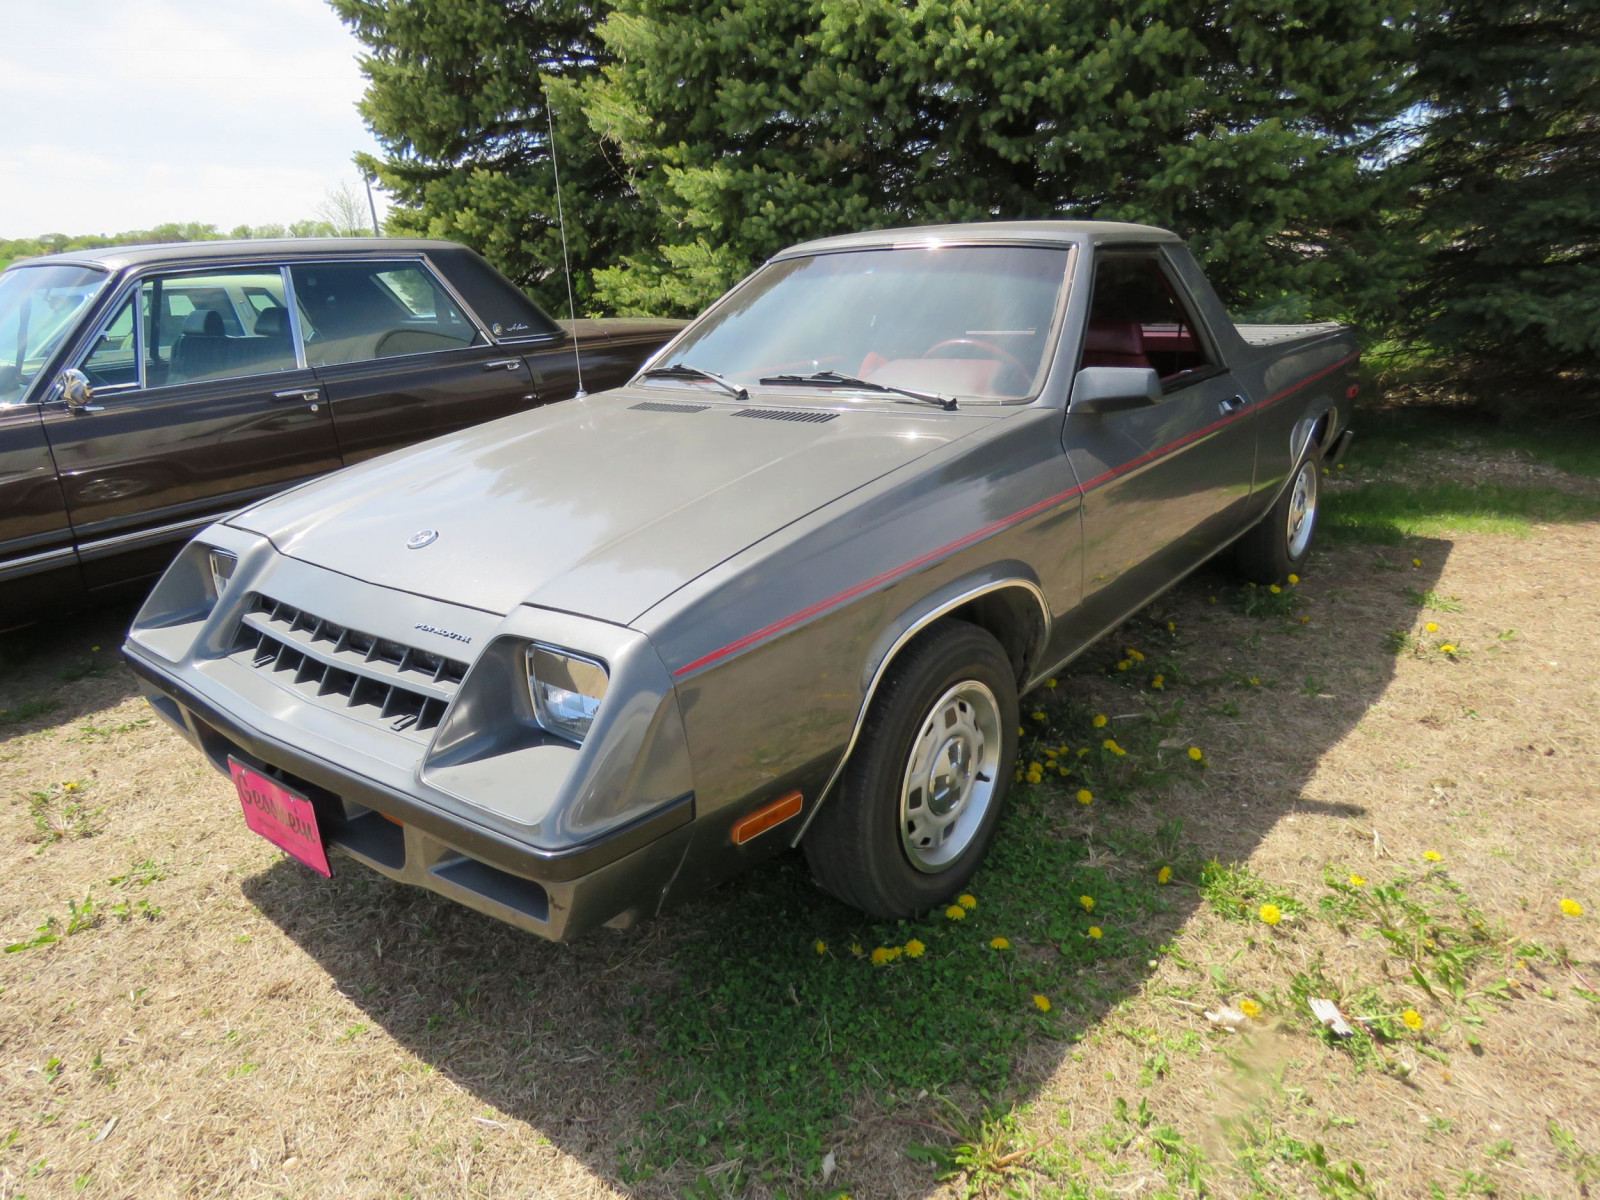 1983 Plymouth Scamp Pickup - Image 1